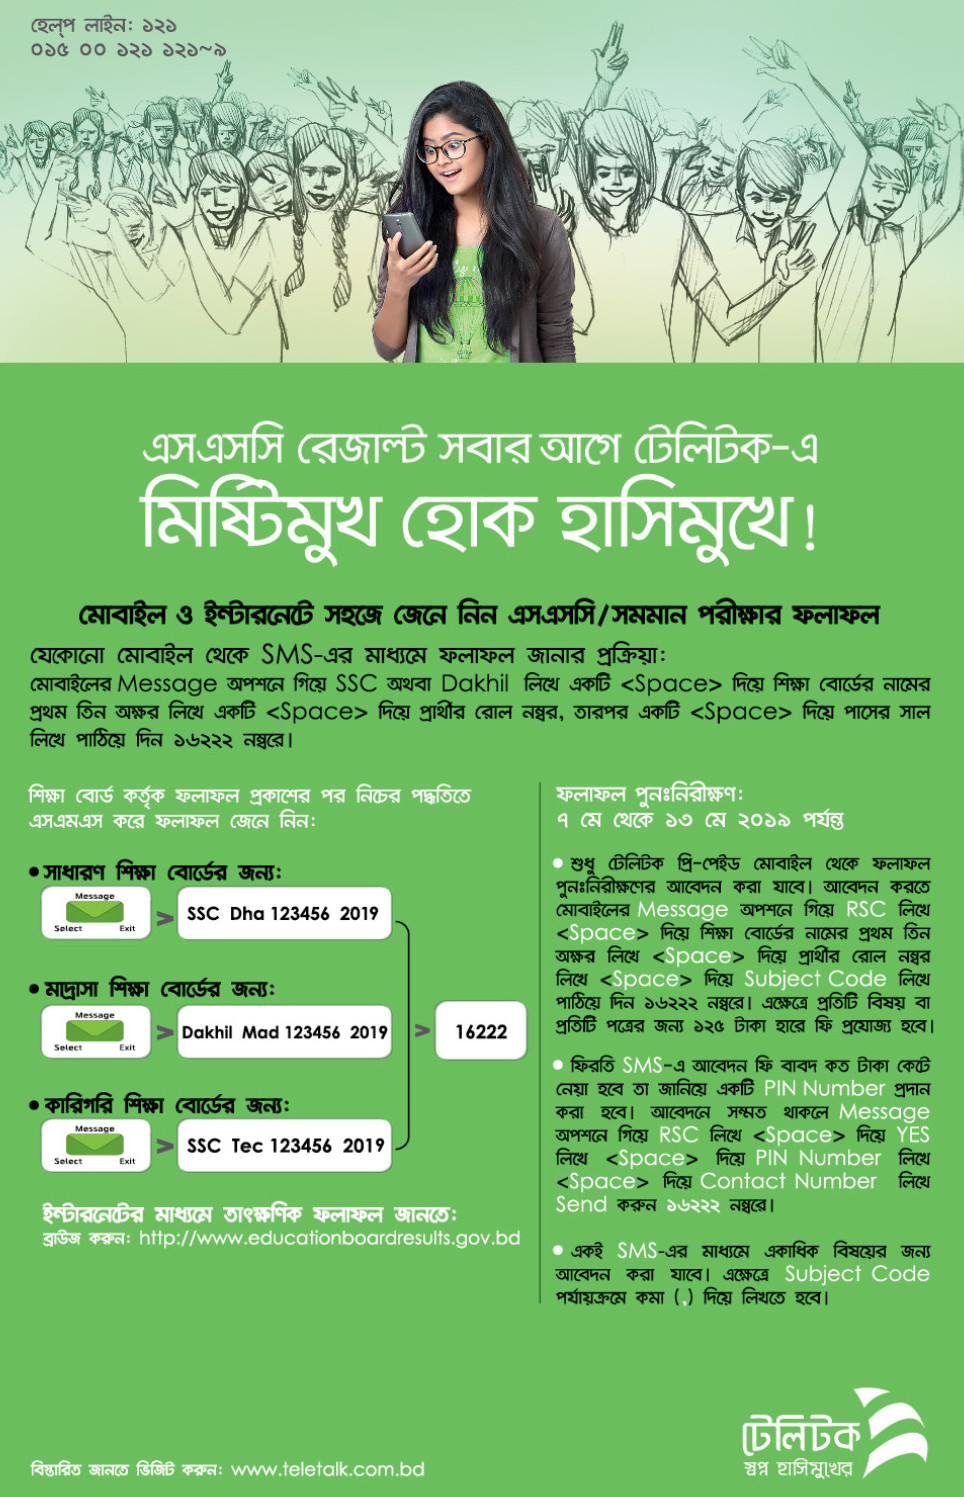 SSC Result Re-Scrutiny Program circular 2019 has published on the official Website of Teletalk Bangladesh limited. Recently, Education board Bangladesh has added the Result Re-Scrutiny (Board Challenge) Circular on the footer section of official result archive.  While someone will visit educationboardresults.gov.bd, they will see the Notice (circular). You can download the official Notice of SSC Board Challenge 2019 where you will get Application process, Board challenge schedule and Fee of Result Re-Scrutiny.  SSC Result Board Challenge Schedule 2019: The Application of SSC Board Challenge will start on 07 May 2019 and it will continue till 13 May 2019. All education board result re-scrutiny process is same and the condition and other system is similar for all education board, Bangladesh. The SSC Result 2019 has published on 06 May 2019. This year, SSC Pass rate is 82.20%. Many candidates aren't unsatisfied with their SSC Result. They can now apply to recheck the answer sheet. After getting the application, the board authority will recheck your answer sheet. if any wrong detect, they will take necessary steps shortly.  •Board Challenge start Date: 07 May 2019 •Last date of Application: 13 May 2019 SSC Board Challenge 2019 Application system: Here is the full application system of SSC Result Board Challenge. Read the below circular and follow the instruction. Teletalk prepaid SIM will be required to apply. So, keep ready the Teletalk prepaid Mobile SIM card and then send the message shortly.   We highly recommend you reading this full circular carefully before submitting the Board Challenge Application. You can check the Marks of SSC Exam to understand the Result. Thanks for staying here with us.